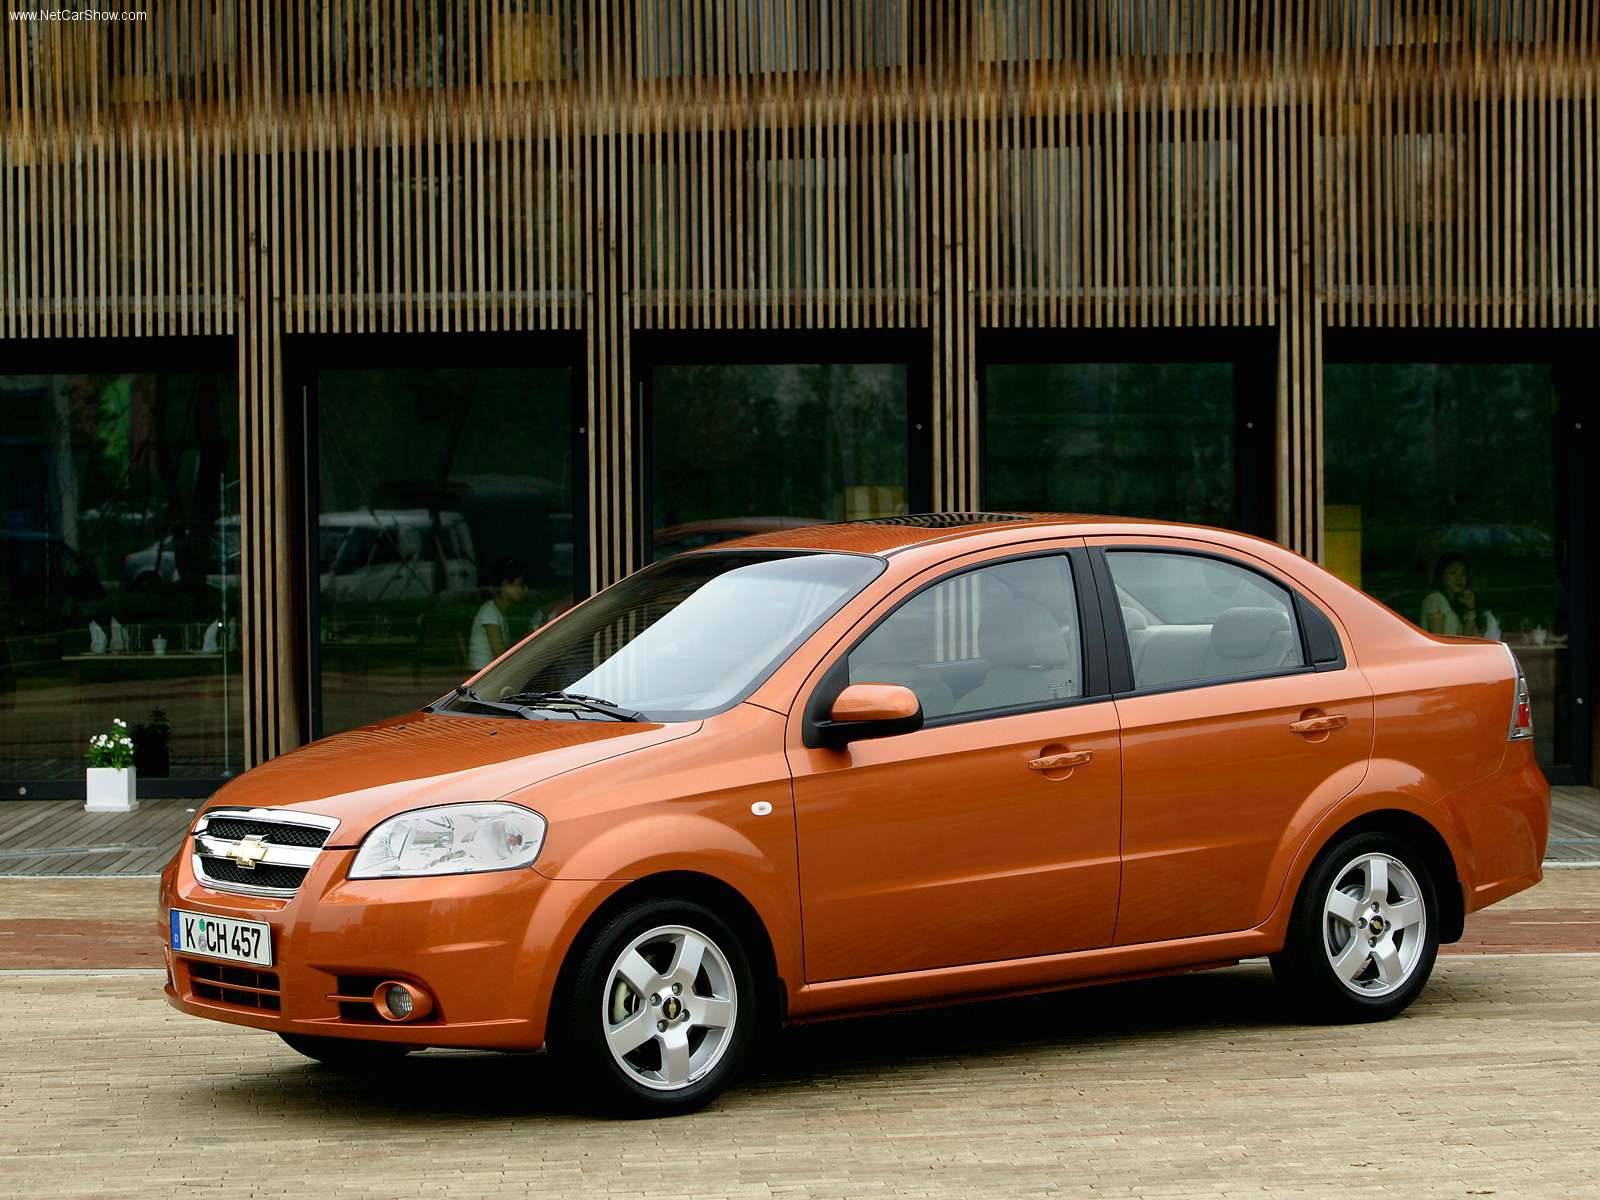 Pictures of chevrolet aveo sedan 2014 #10